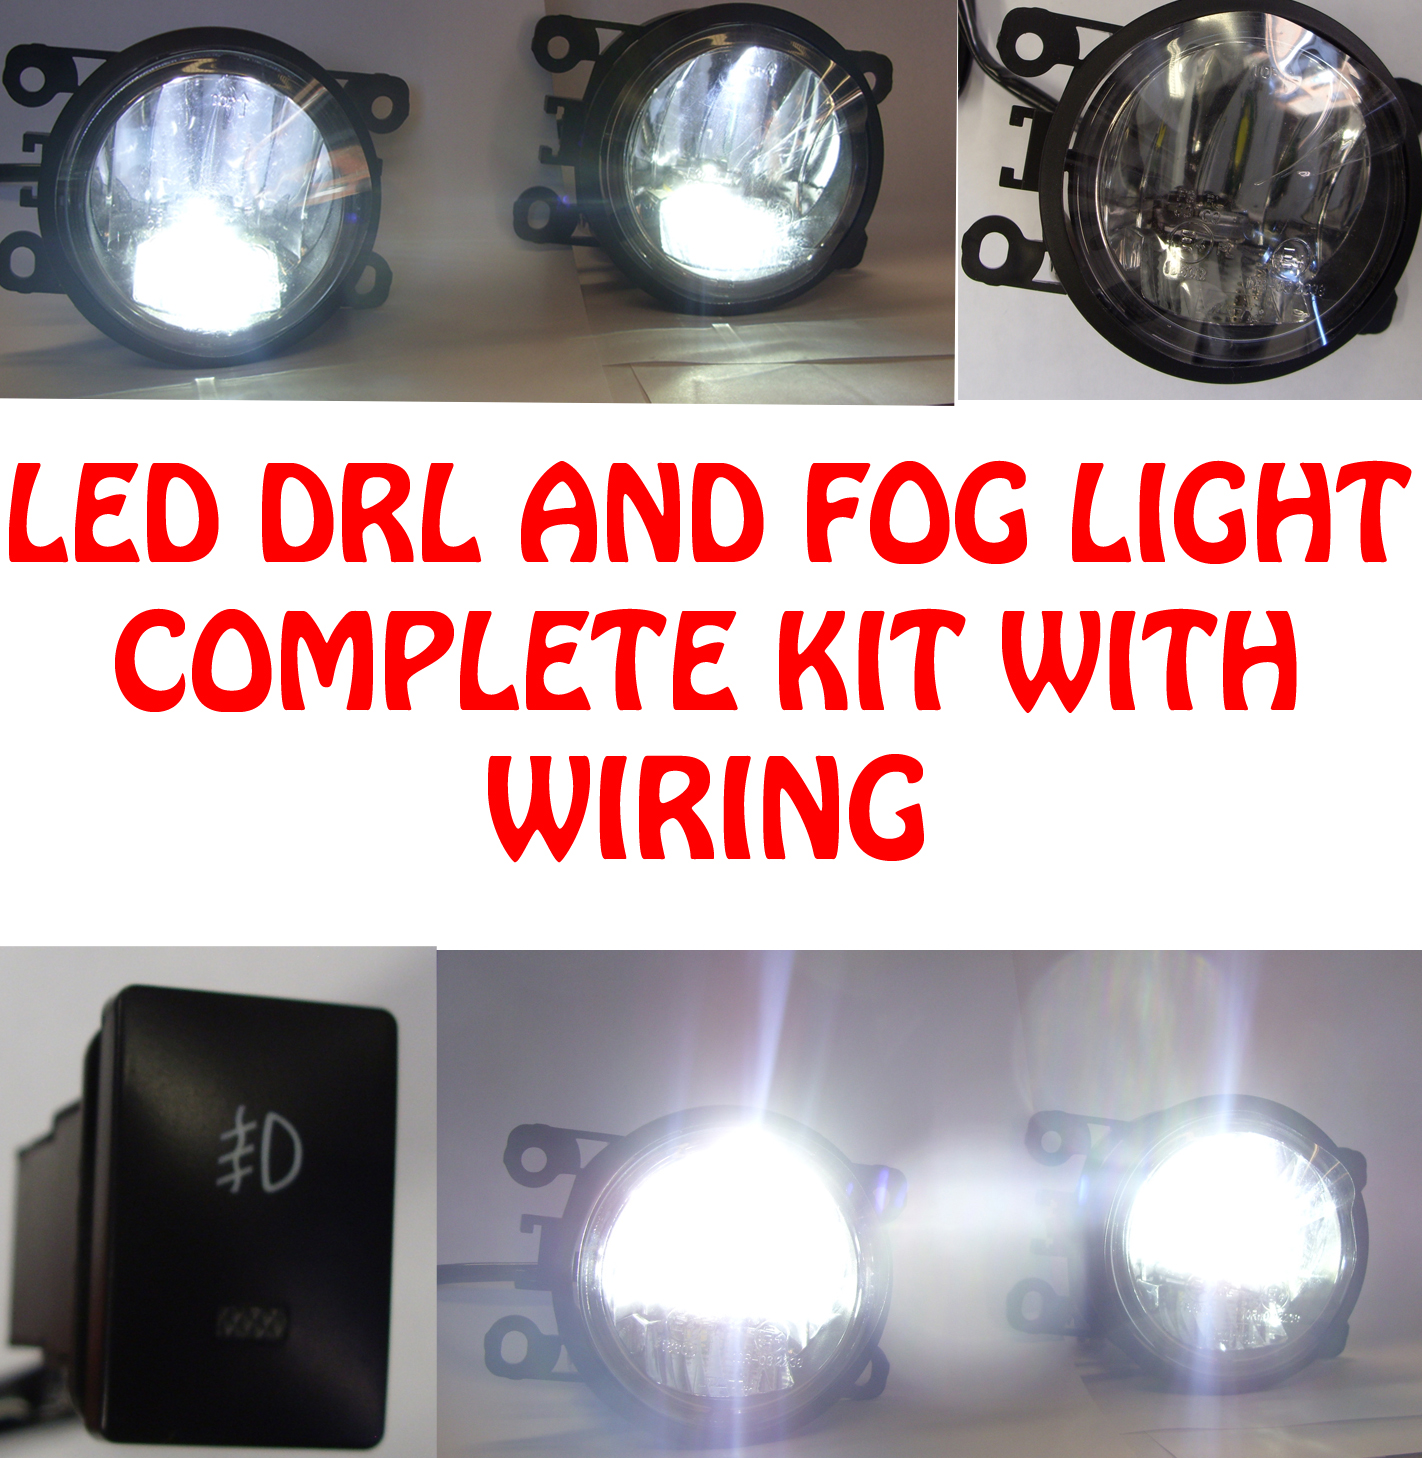 Led Drl And Fog Lights With Wiring Switch For Vauxhall Corsa D A Power To Light Sentinel Vxr 06